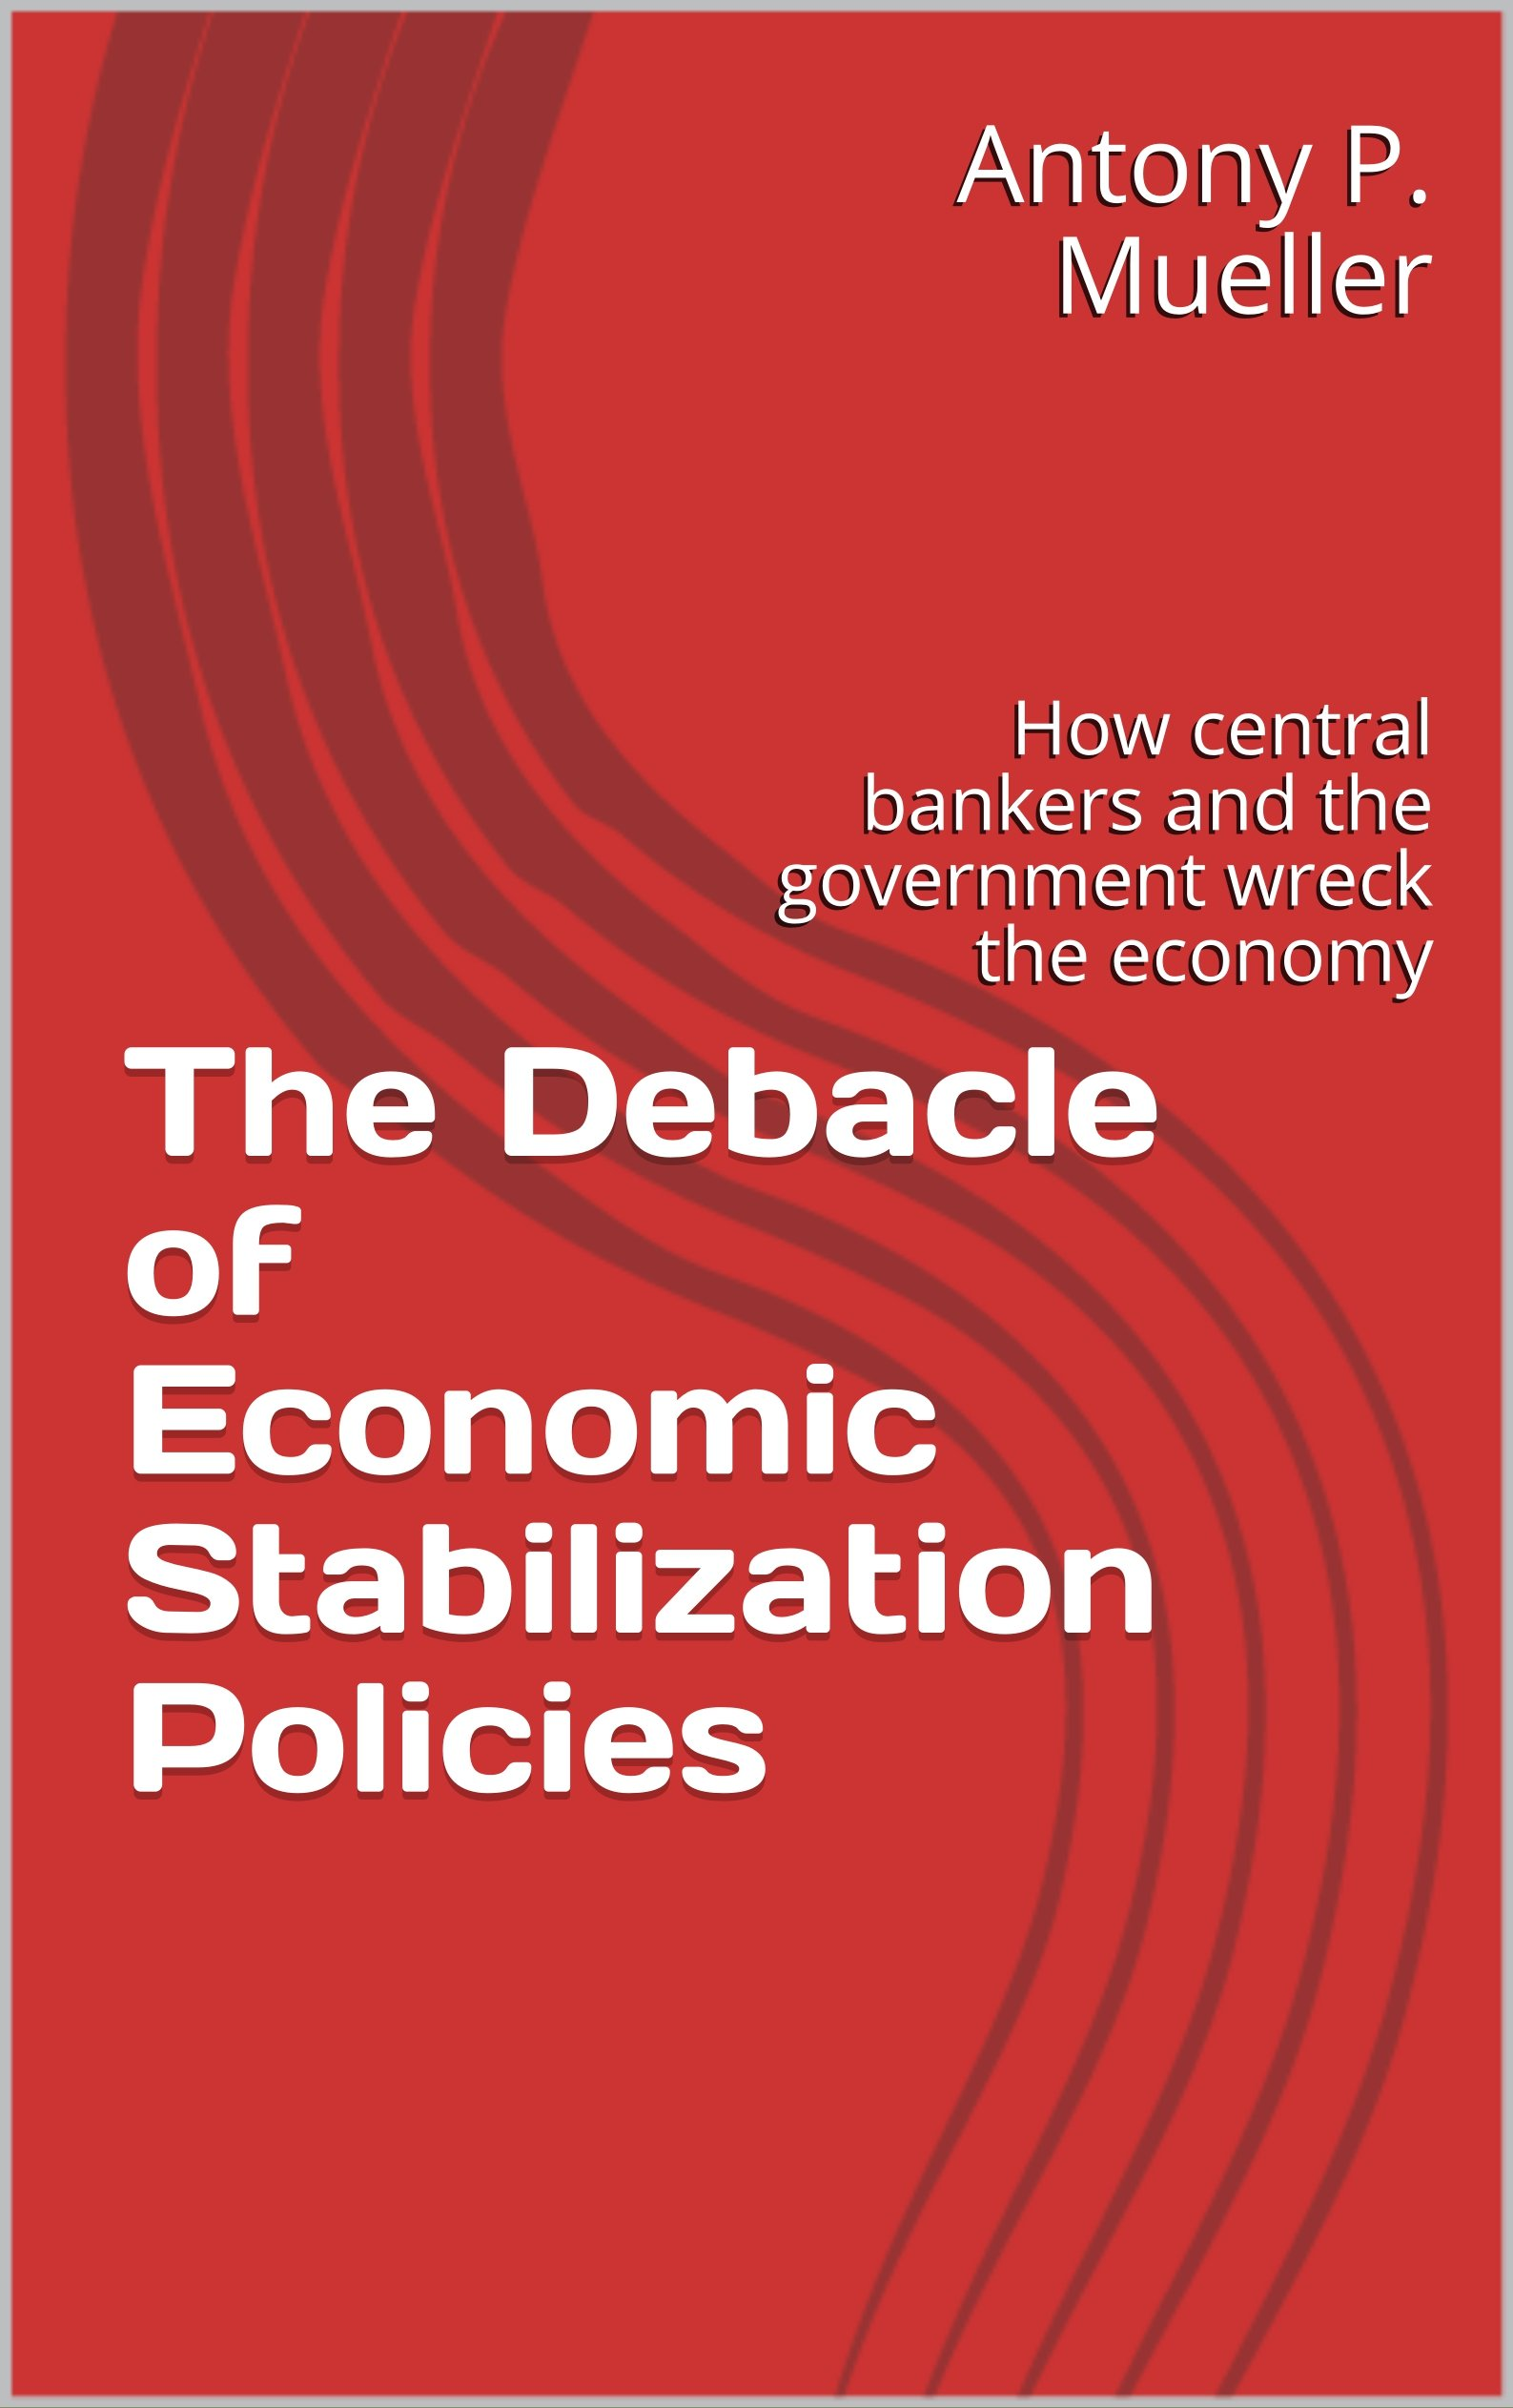 The Debacle Of Economic Stabilization Policies  How Central Bankers And The Government Wreck The Economy  English Edition